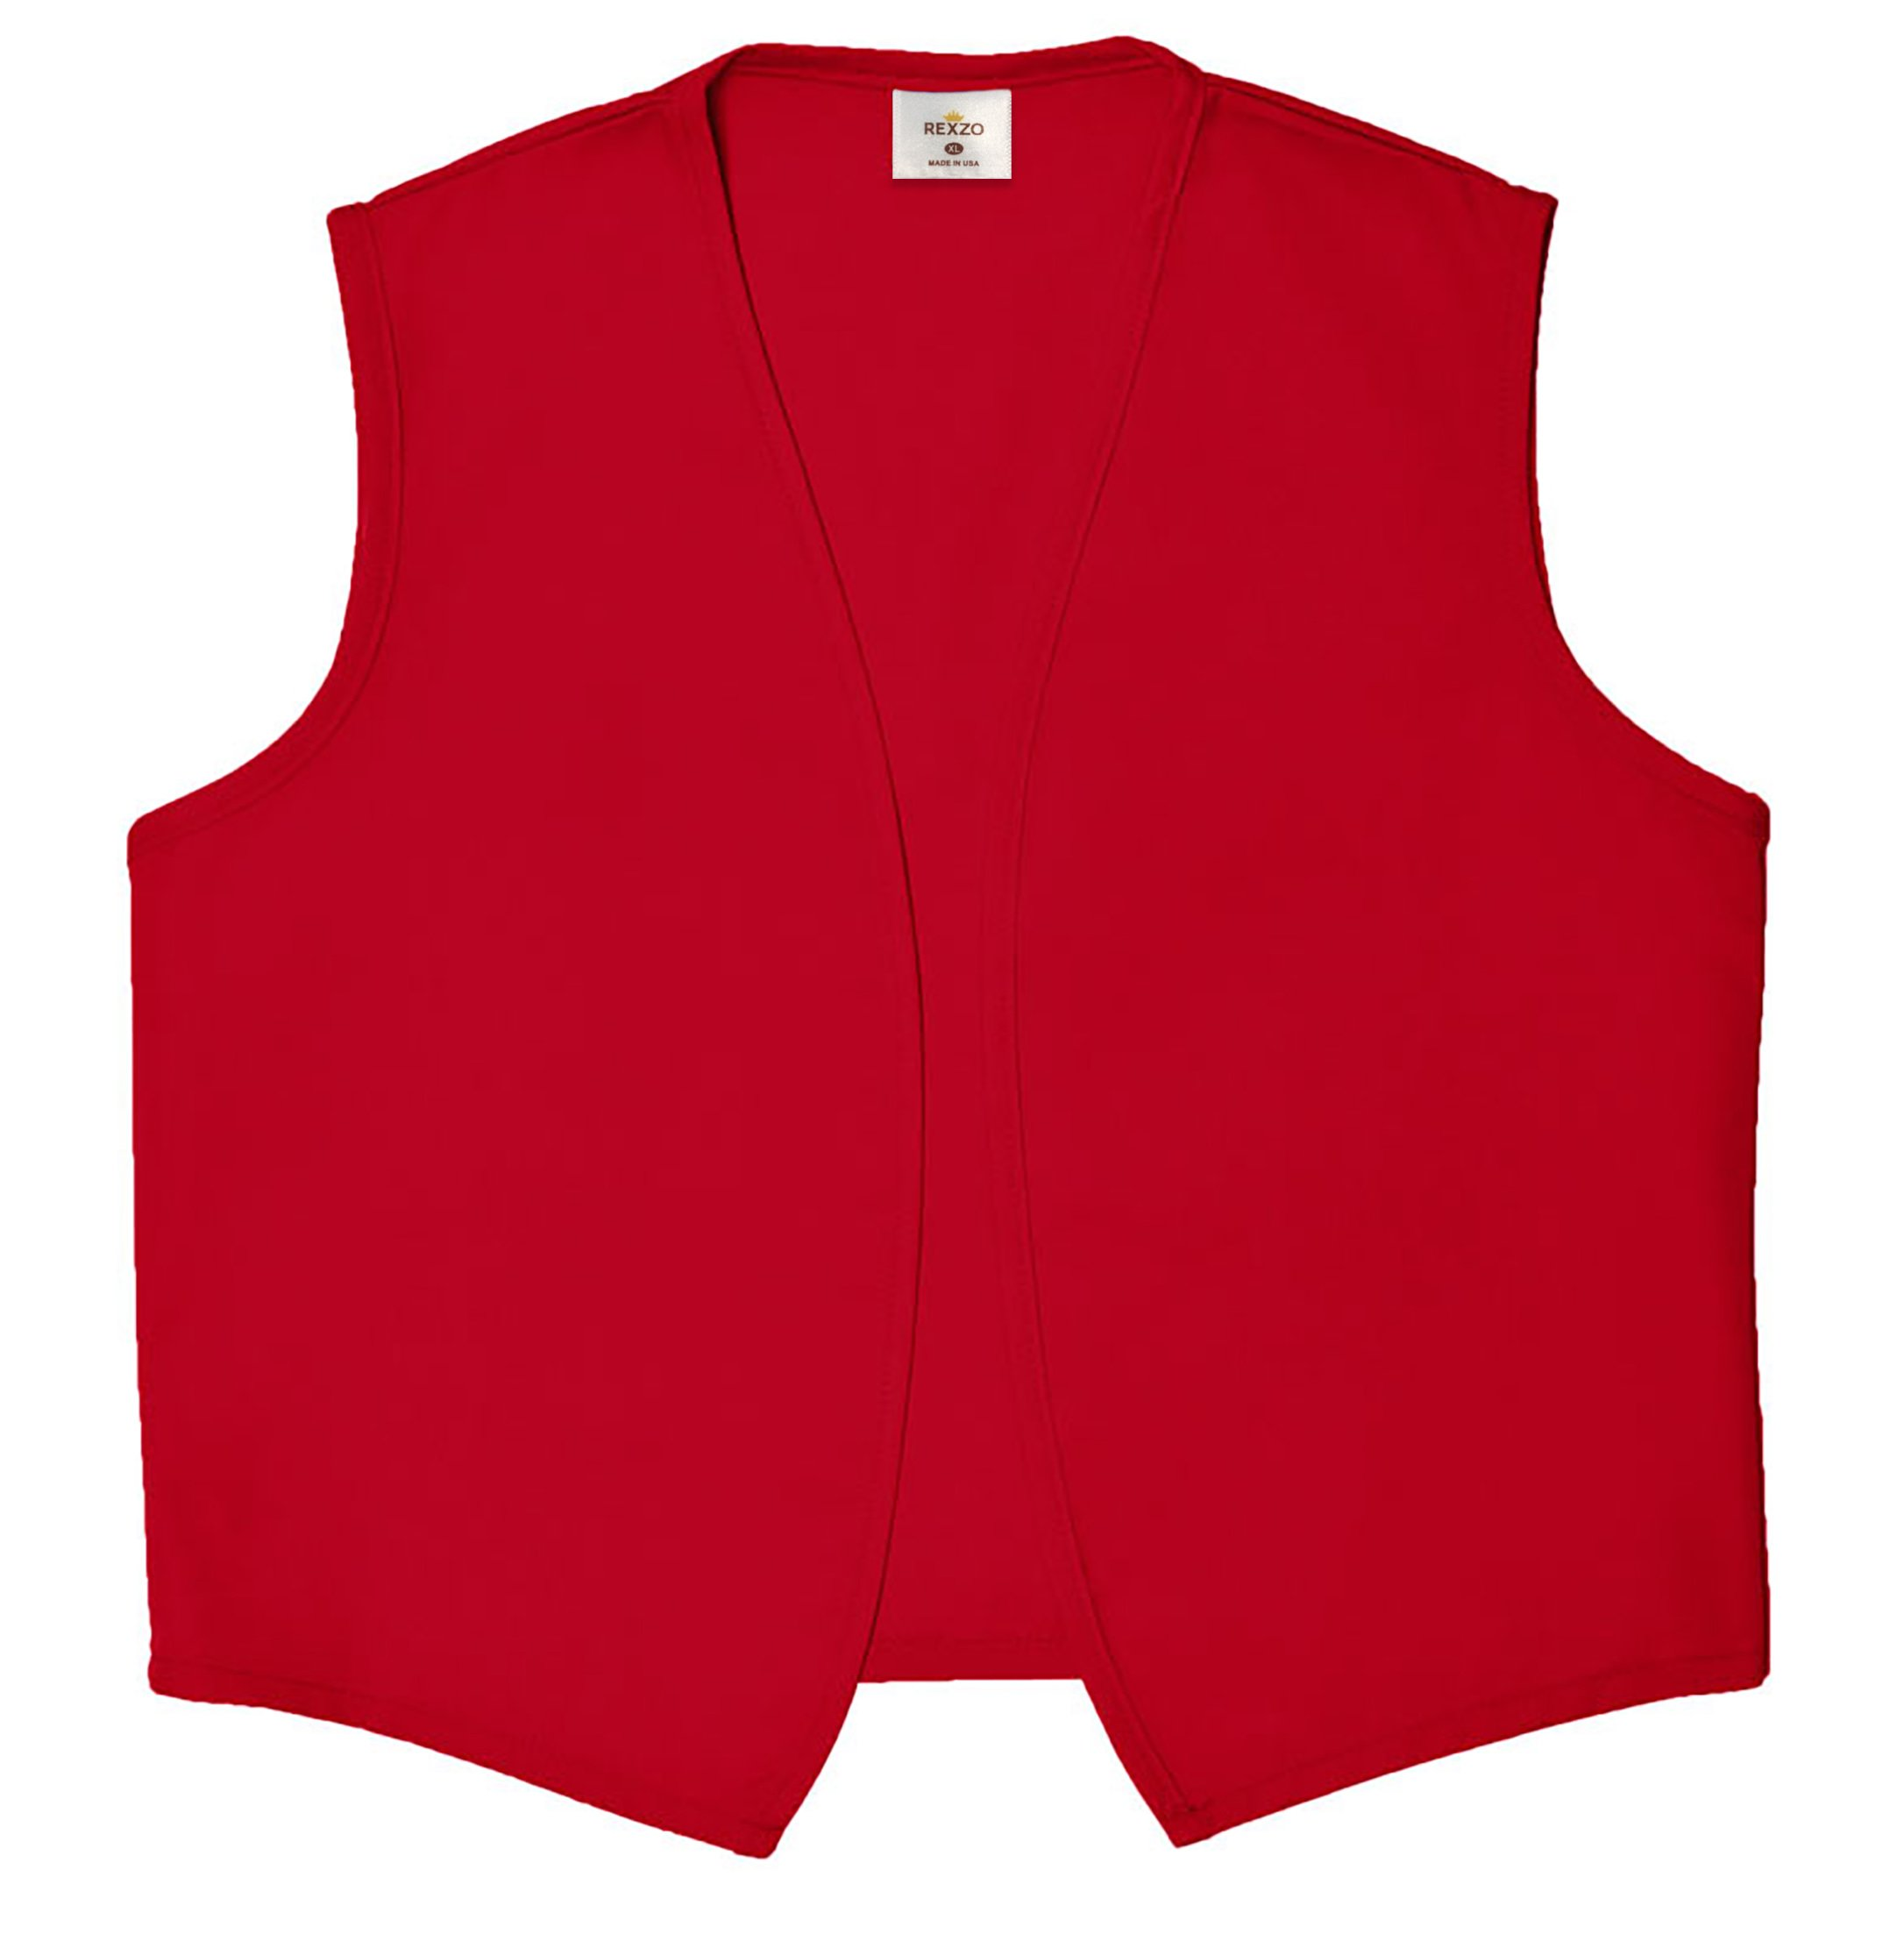 Unisex Vest No Pocket No Buttons- Made in The USA - Red, Medium by Rexzo